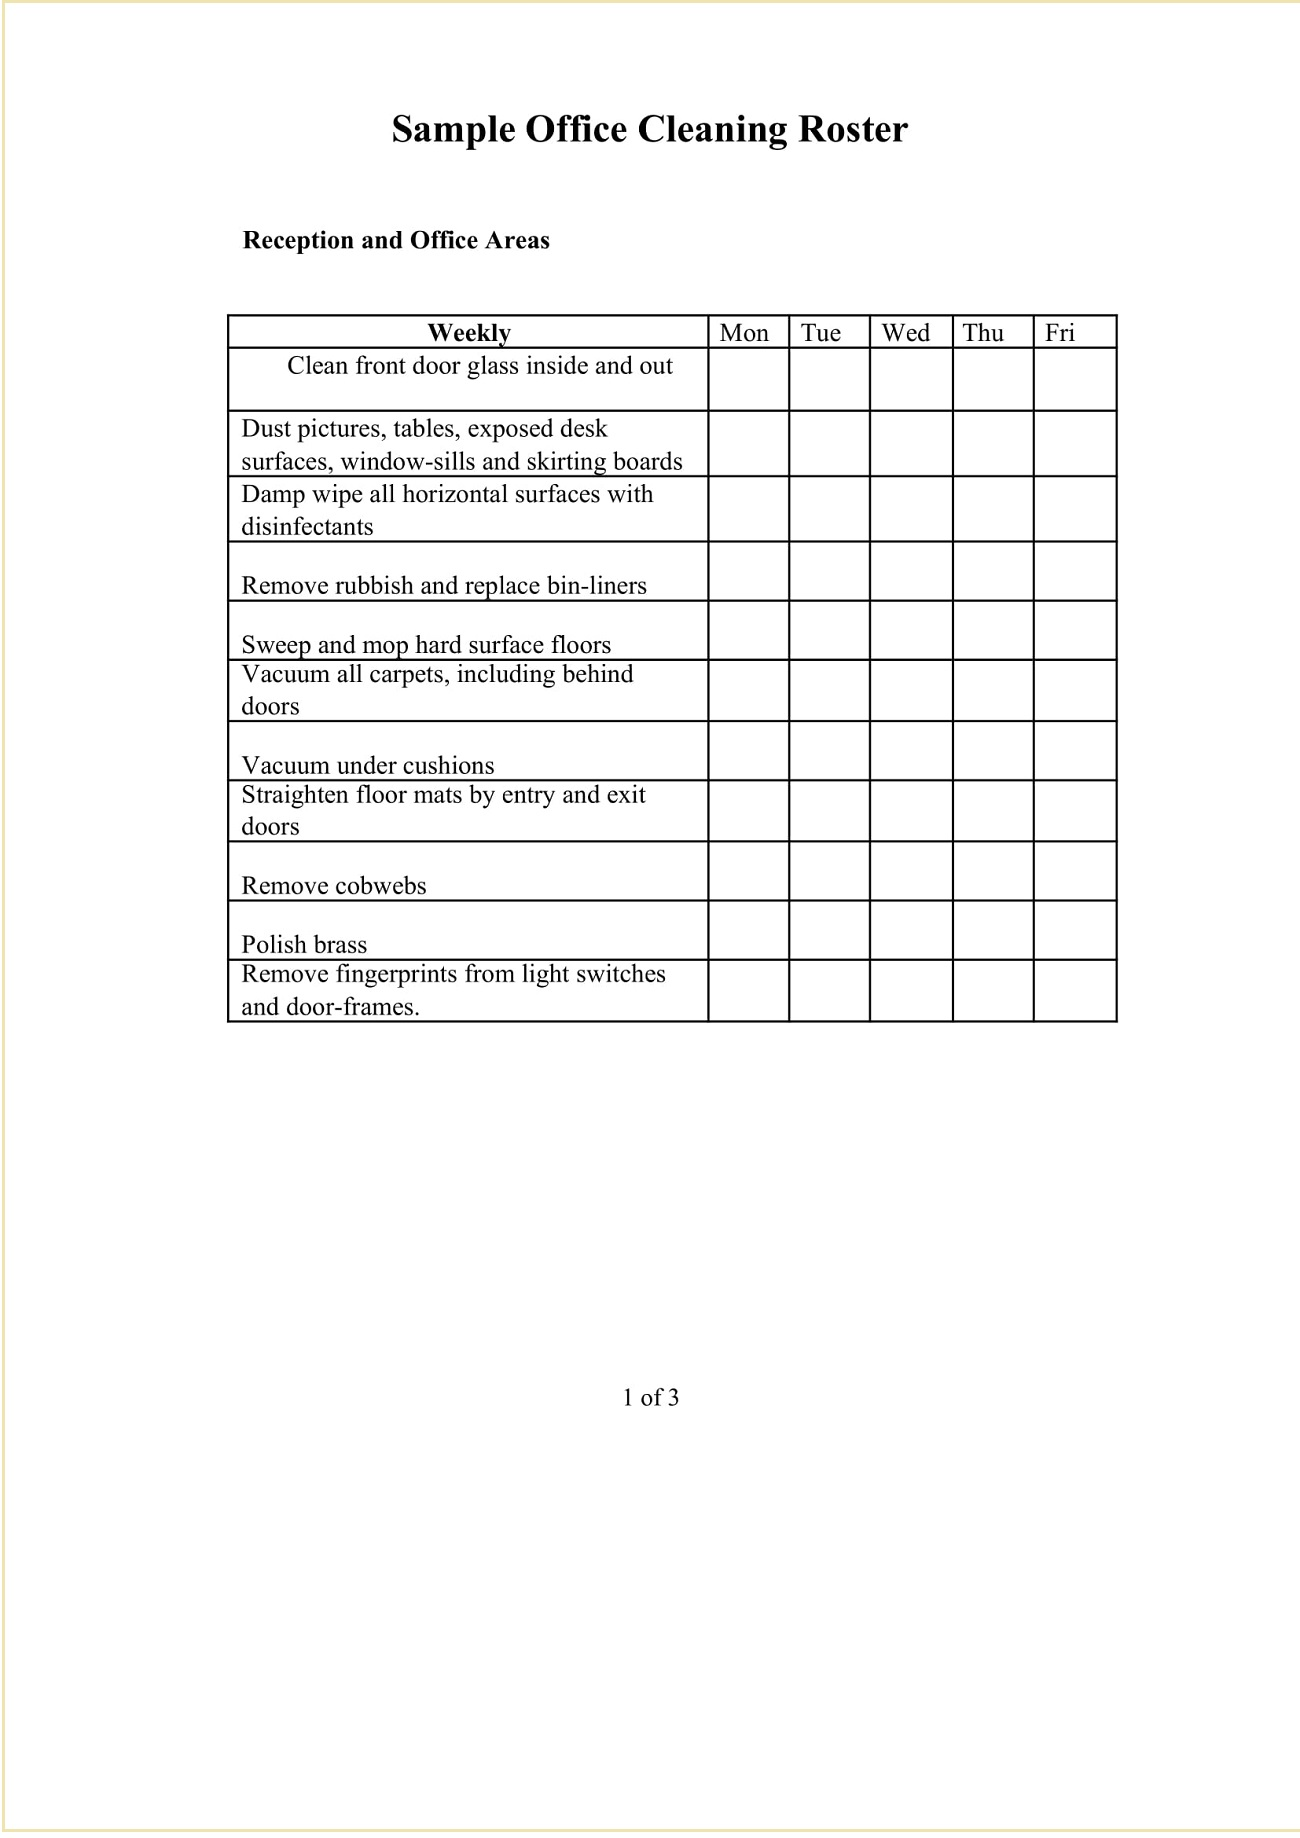 Sample Office Cleaning Roster Template Word